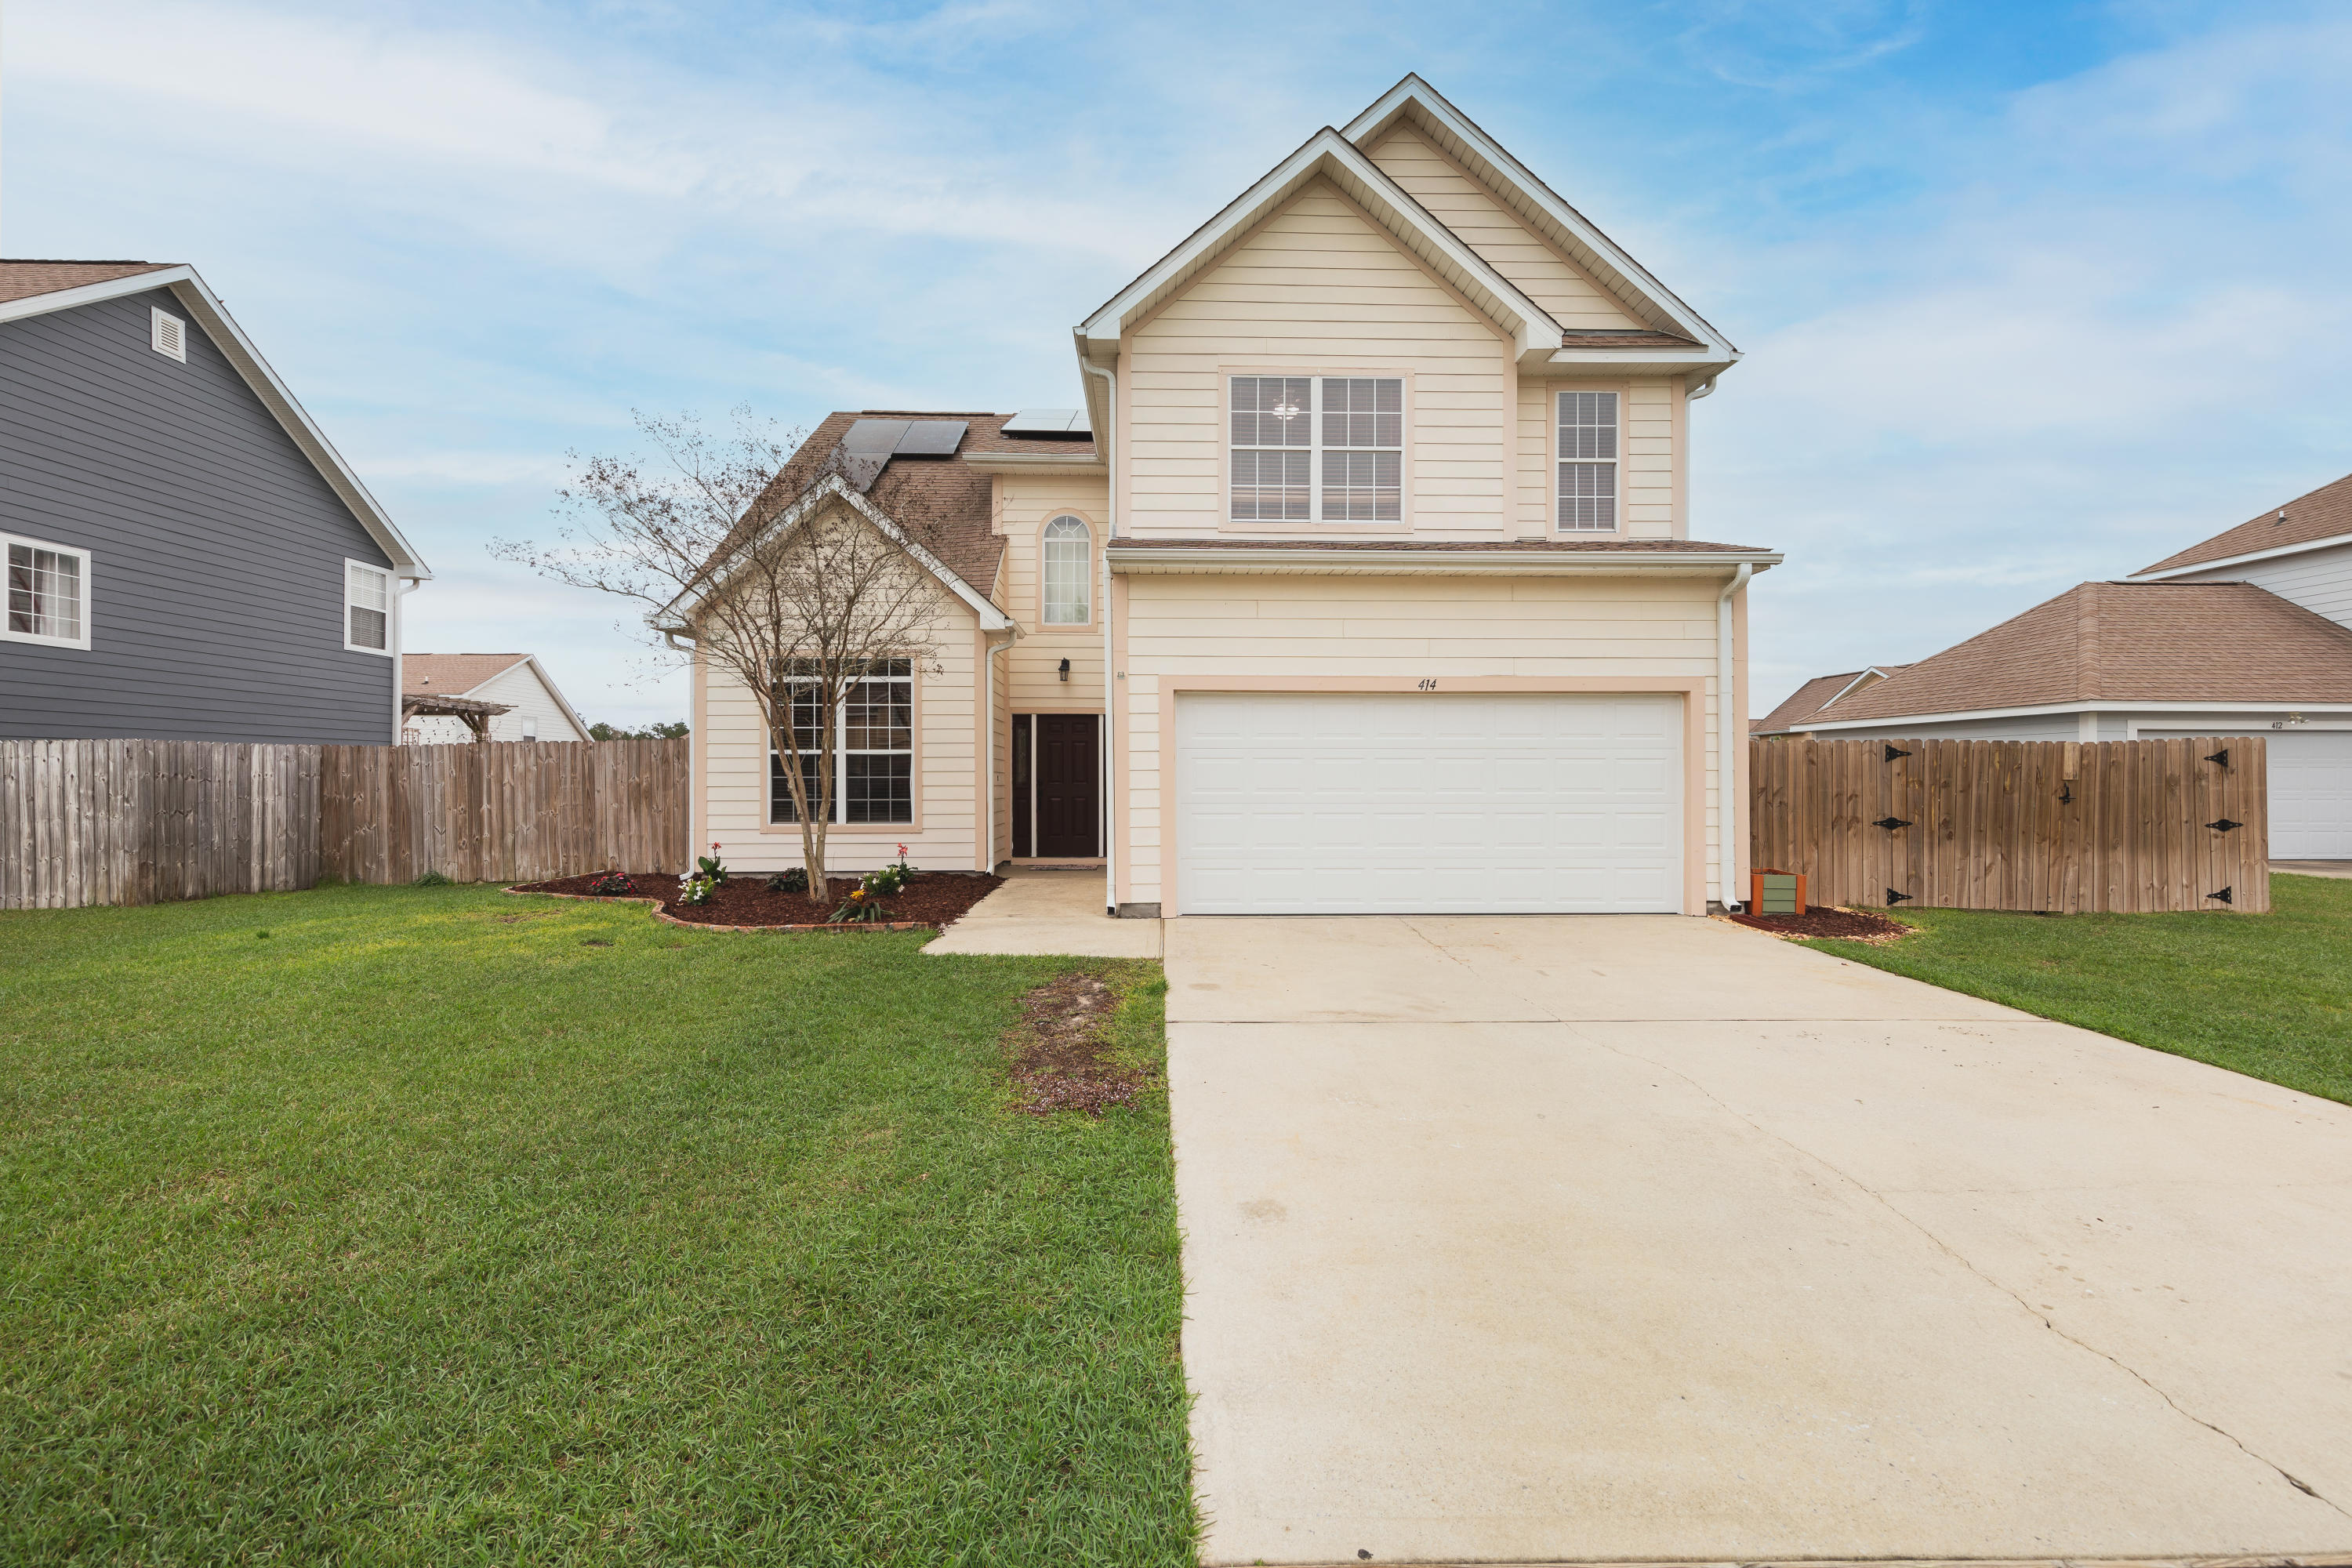 Photo of home for sale at 414 Peoria, Crestview FL